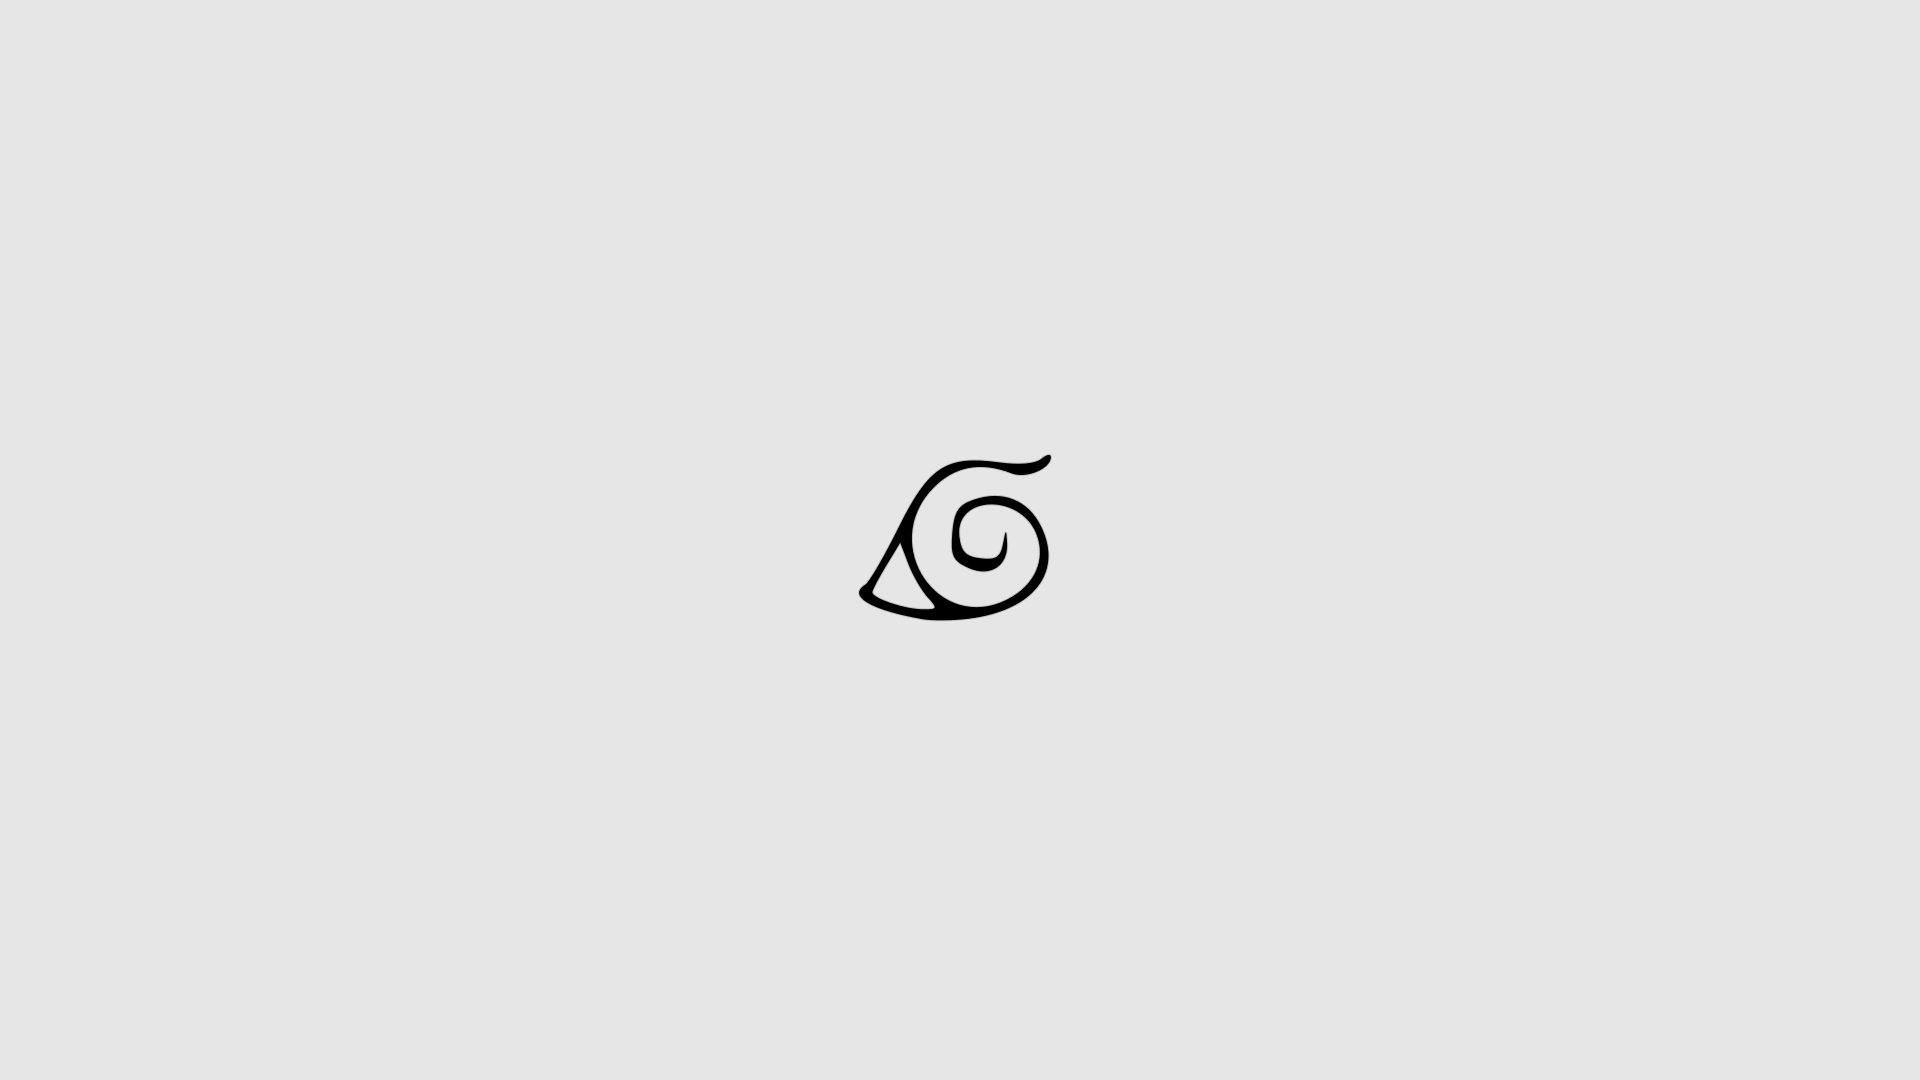 Anime - Naruto  Minimalist Logo Wallpaper